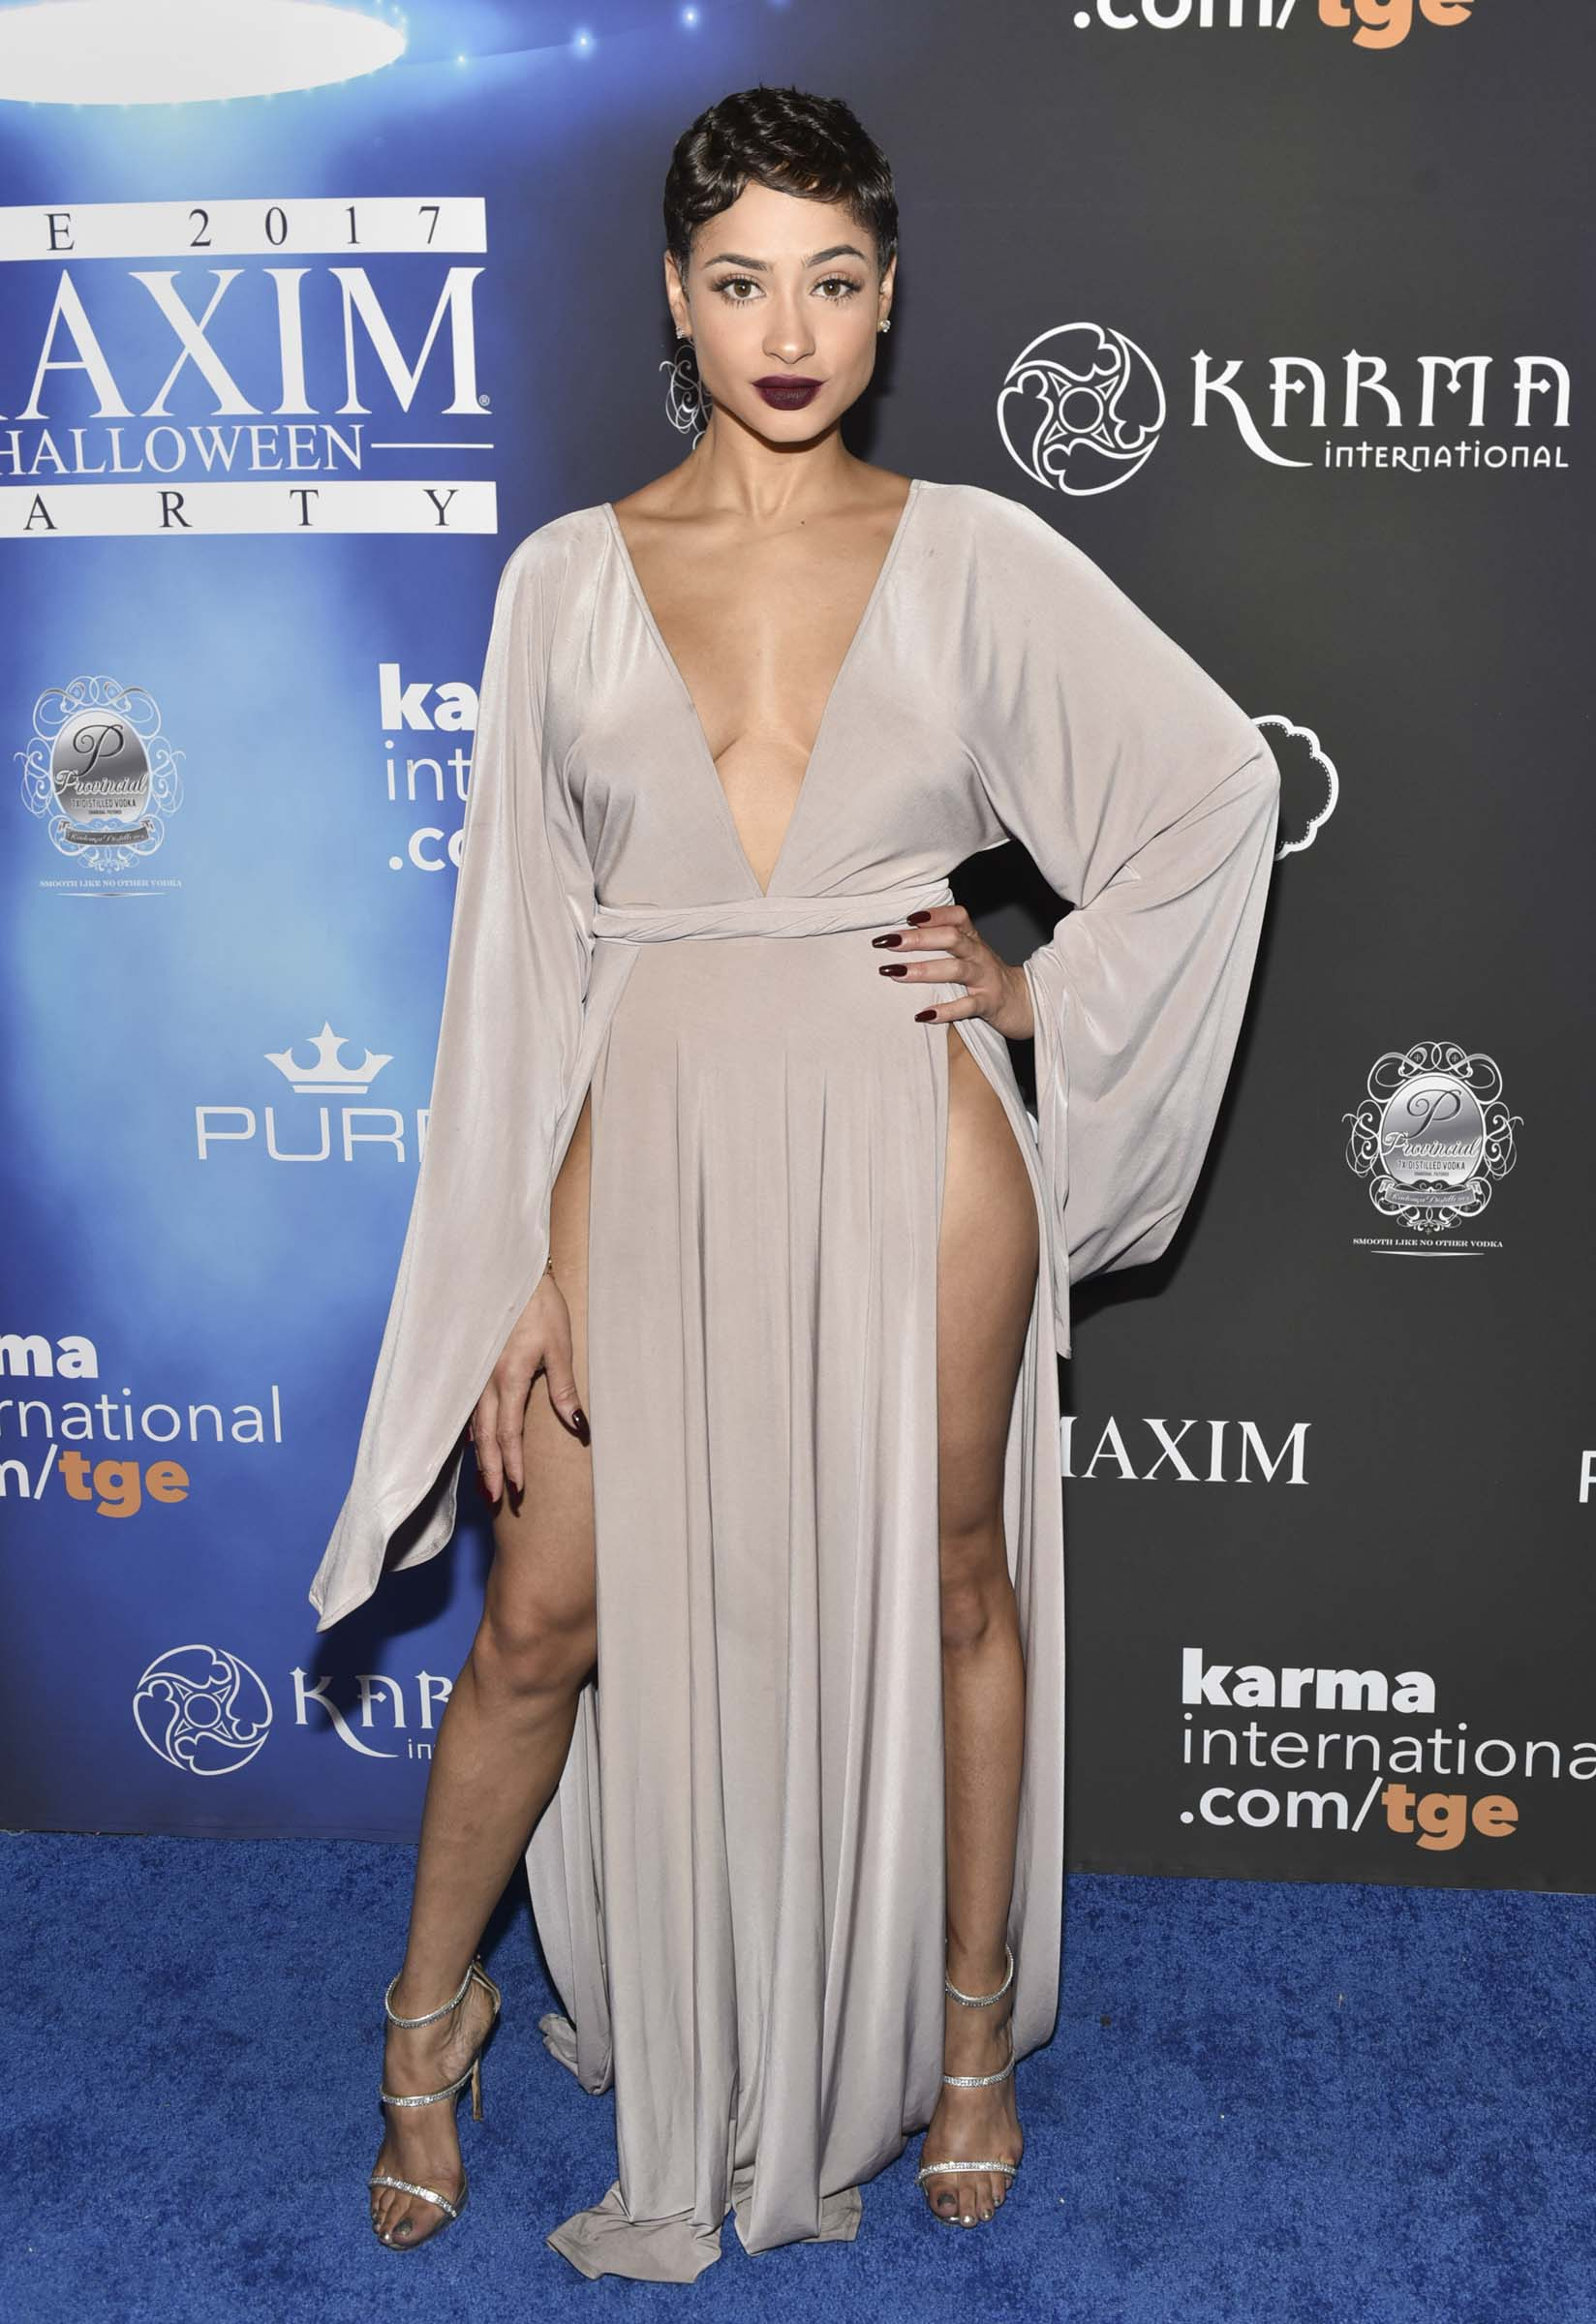 los angeles ca october 21 tori hughes arrives at the 2017 maxim halloween party at la center studios on october 21 2017 in los angeles california